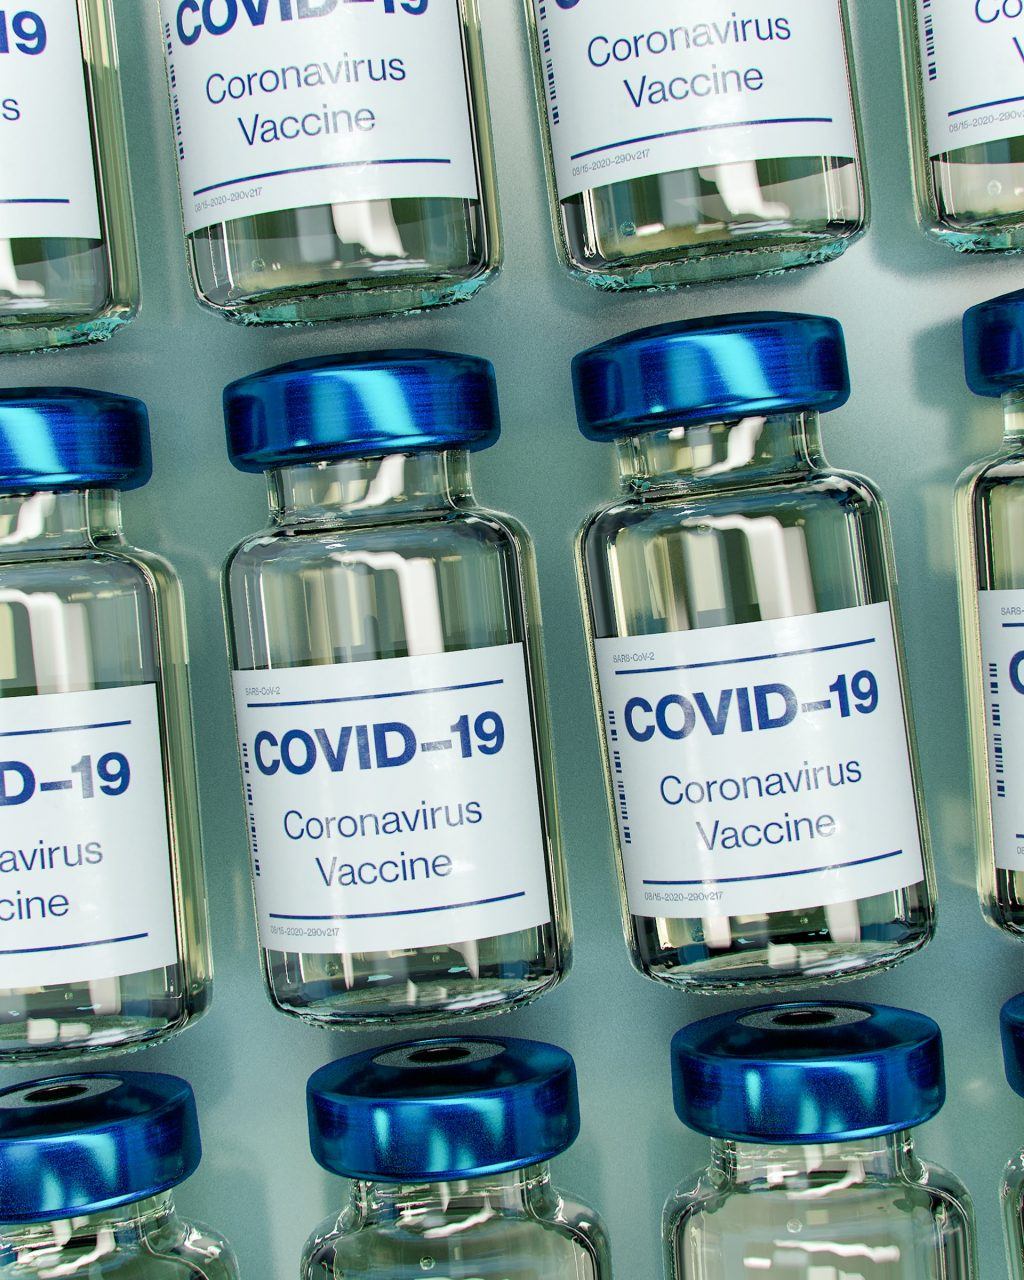 High-Performing Business Sectors during the COVID-19 Pandemic